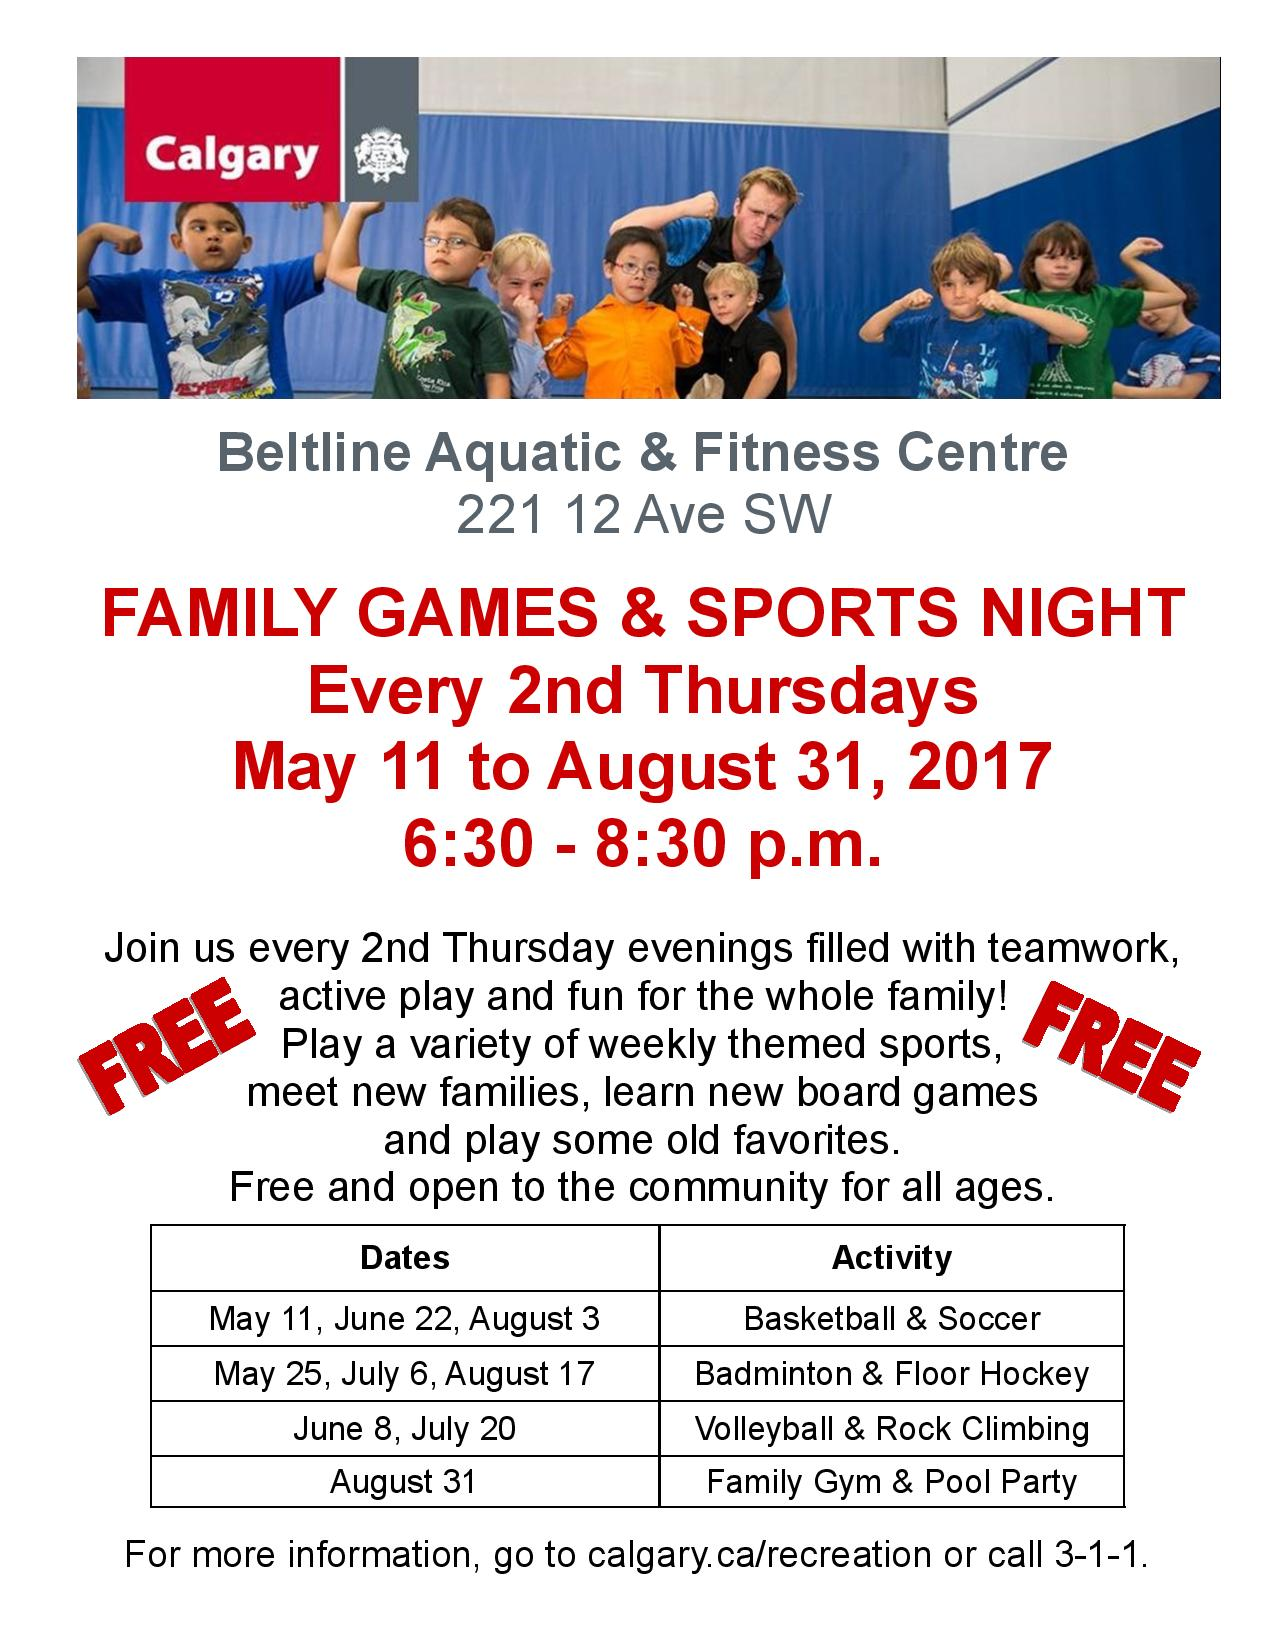 BL_Family_Games___Sports_Night_May_to_August_2017-page-001.jpg